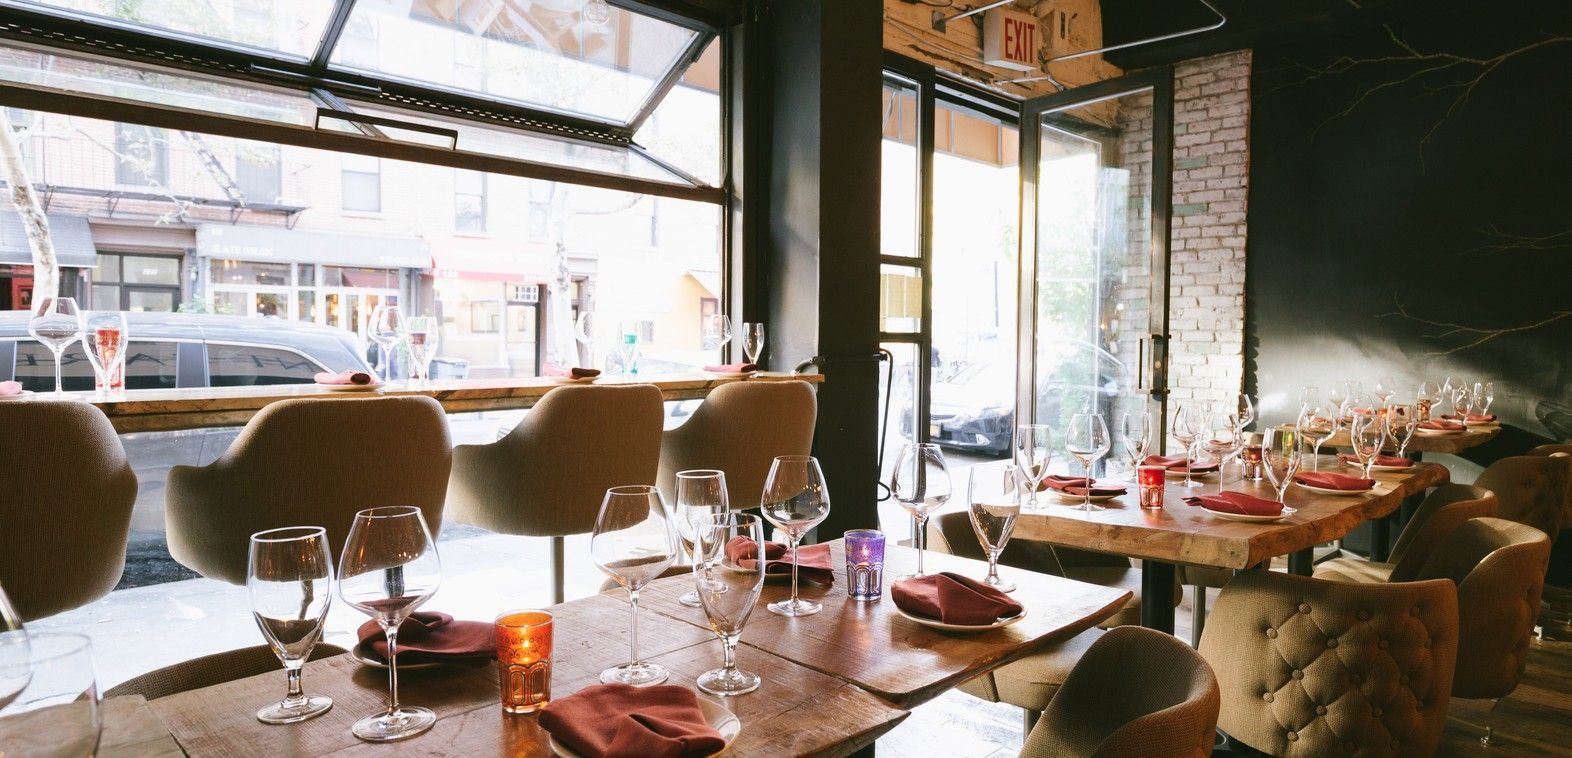 Avant Garden Is A Vegan Place In The East Village That S Nice Enough For An Intimate Date Night When You Just Want To Eat Some Vegetables